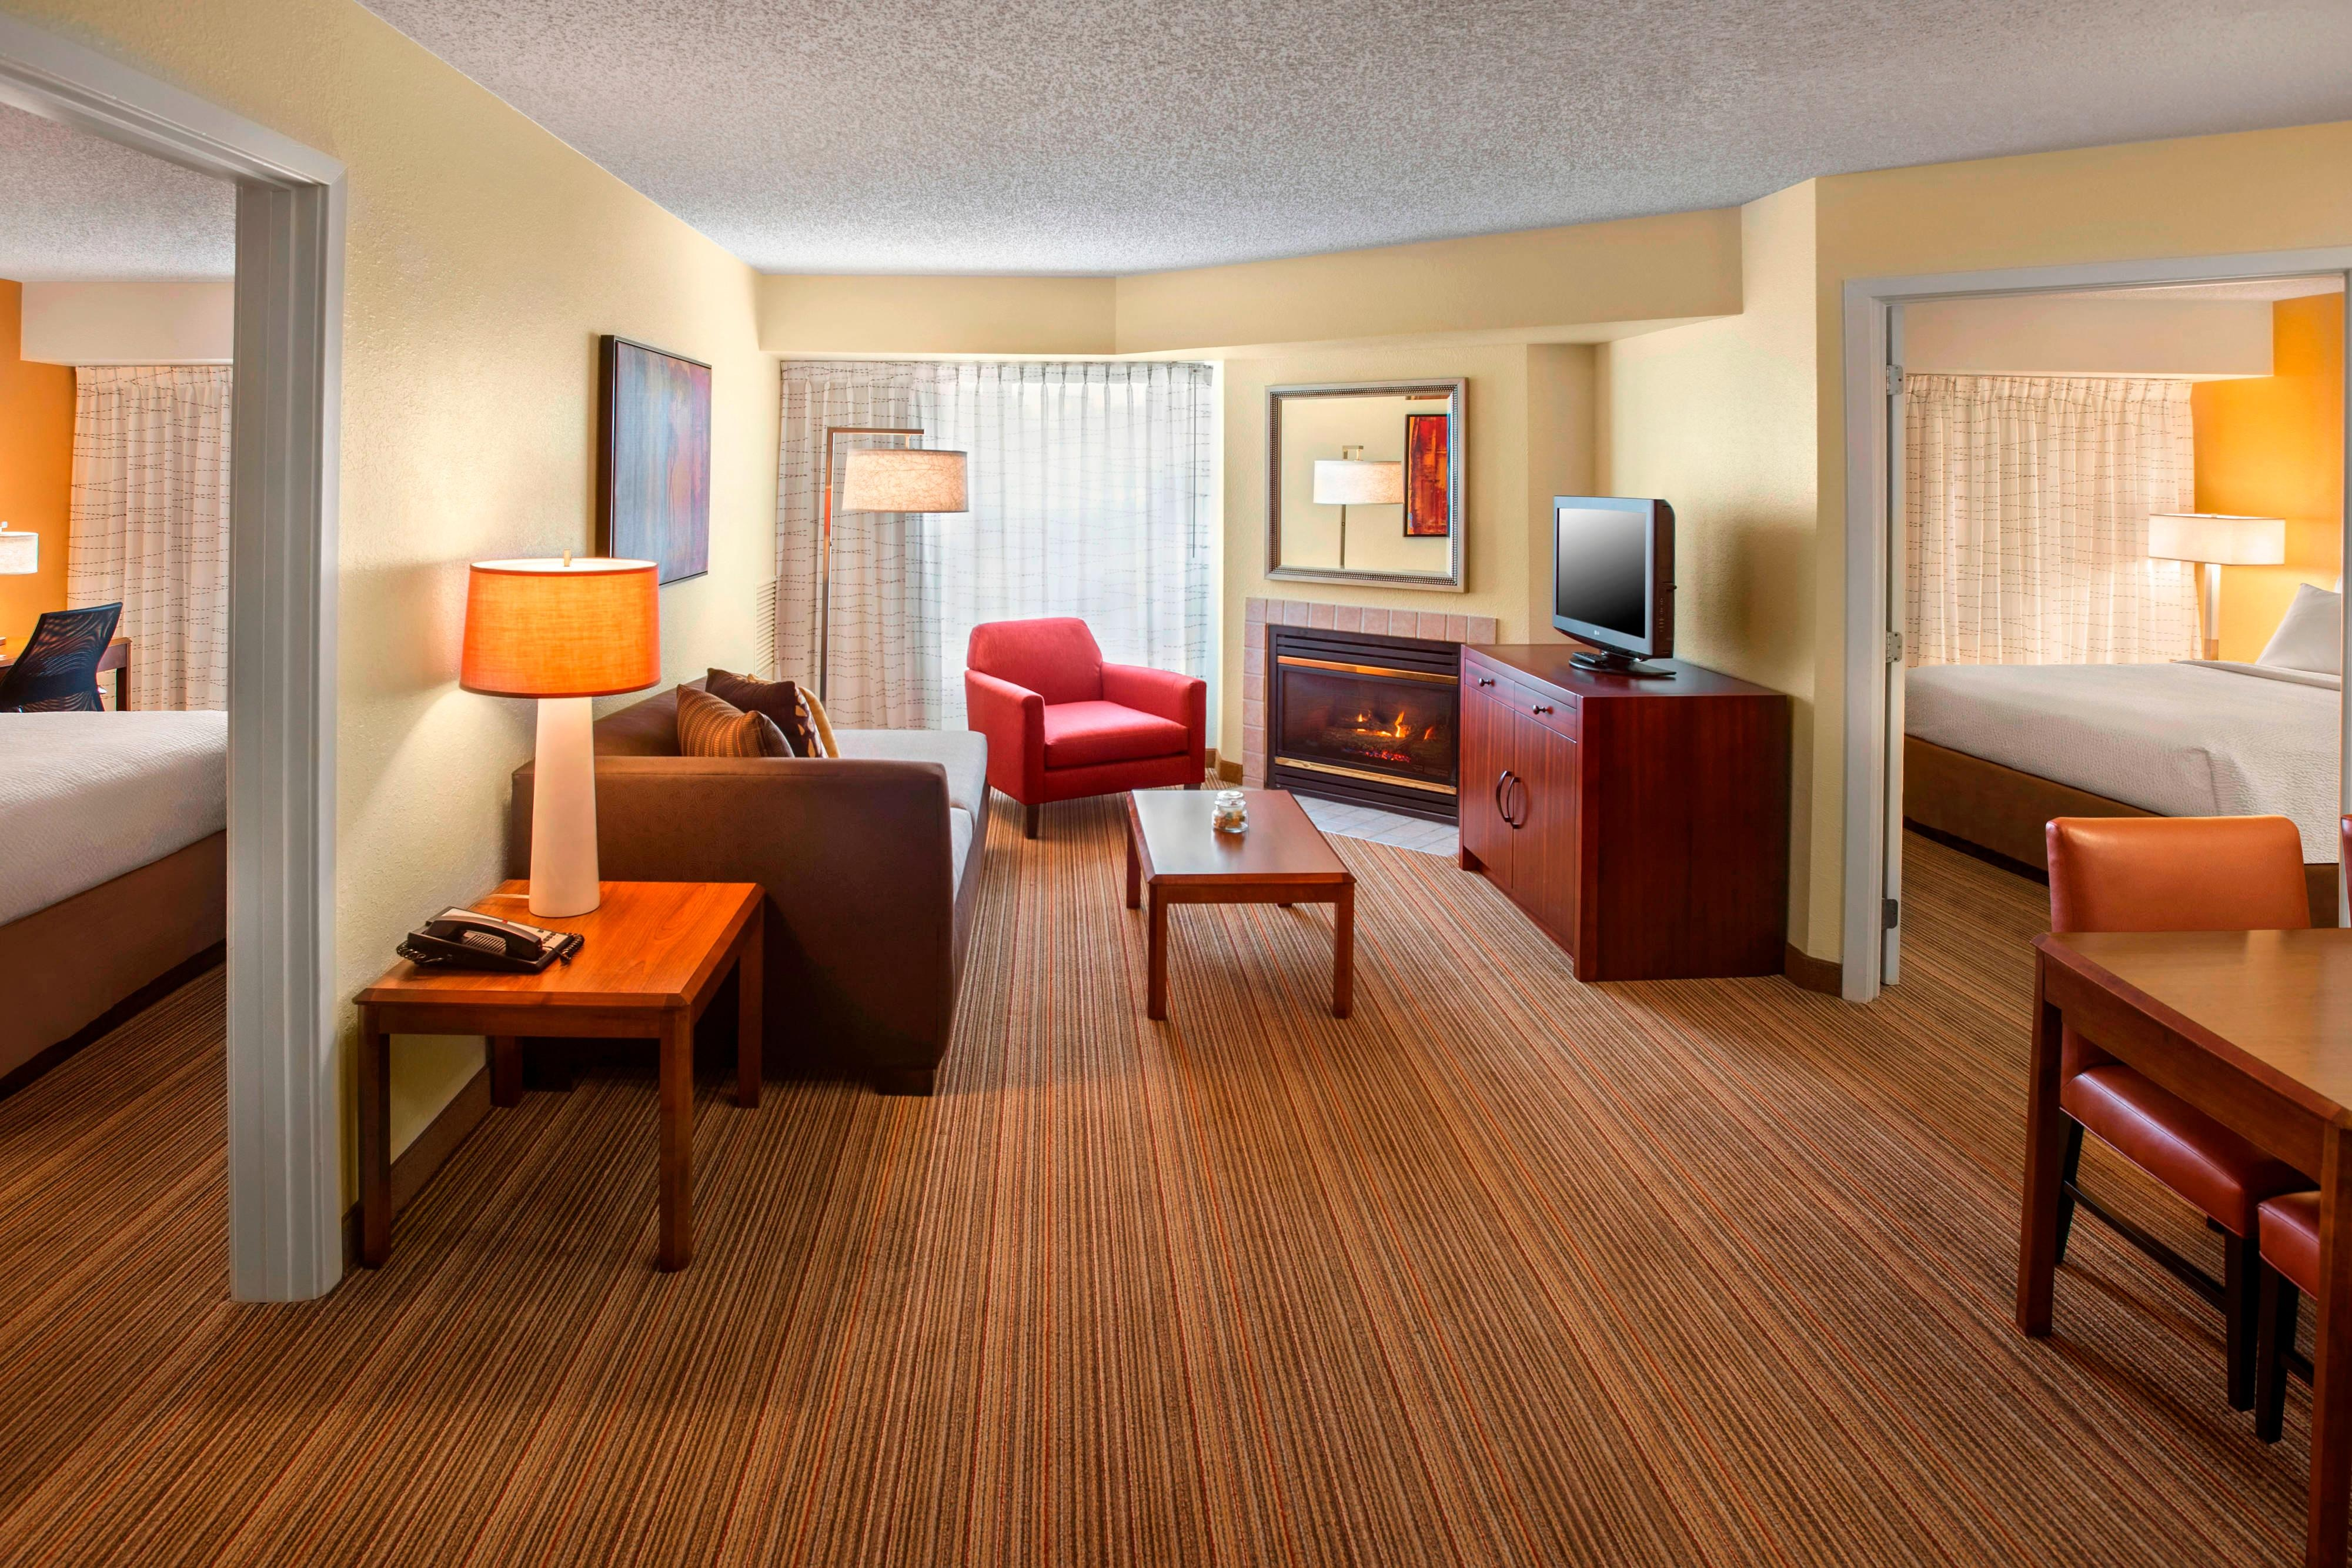 hotels guest suites suite orleans rooms hotel towneplace in wassf at bedroom springfield new hor va clsc